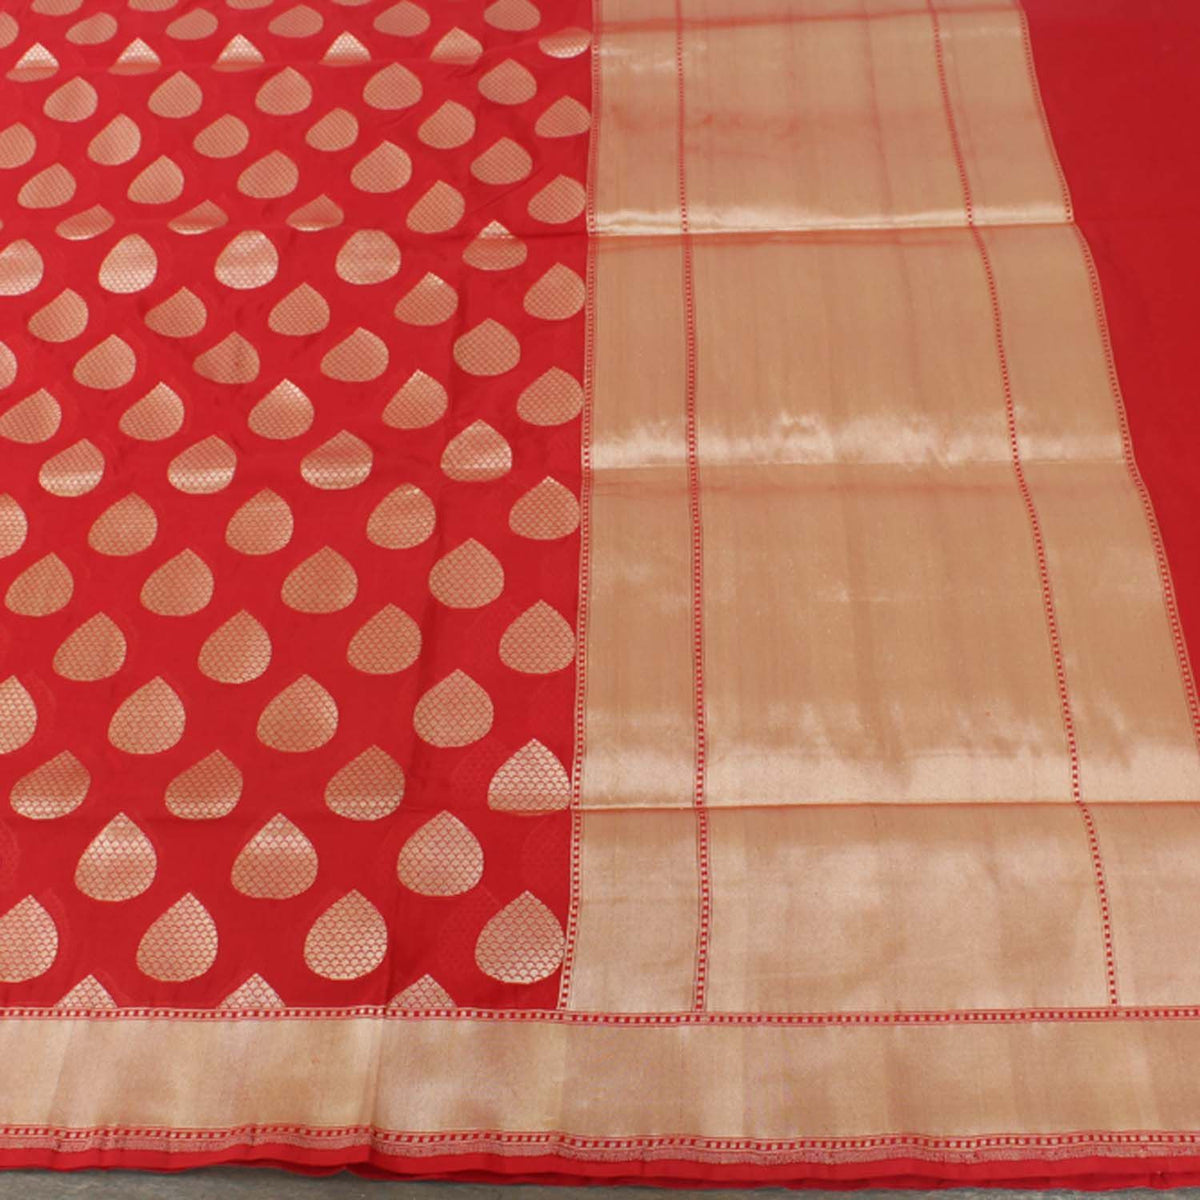 Red Pure Silk Georgette Banarasi Handloom Saree - Tilfi - 3